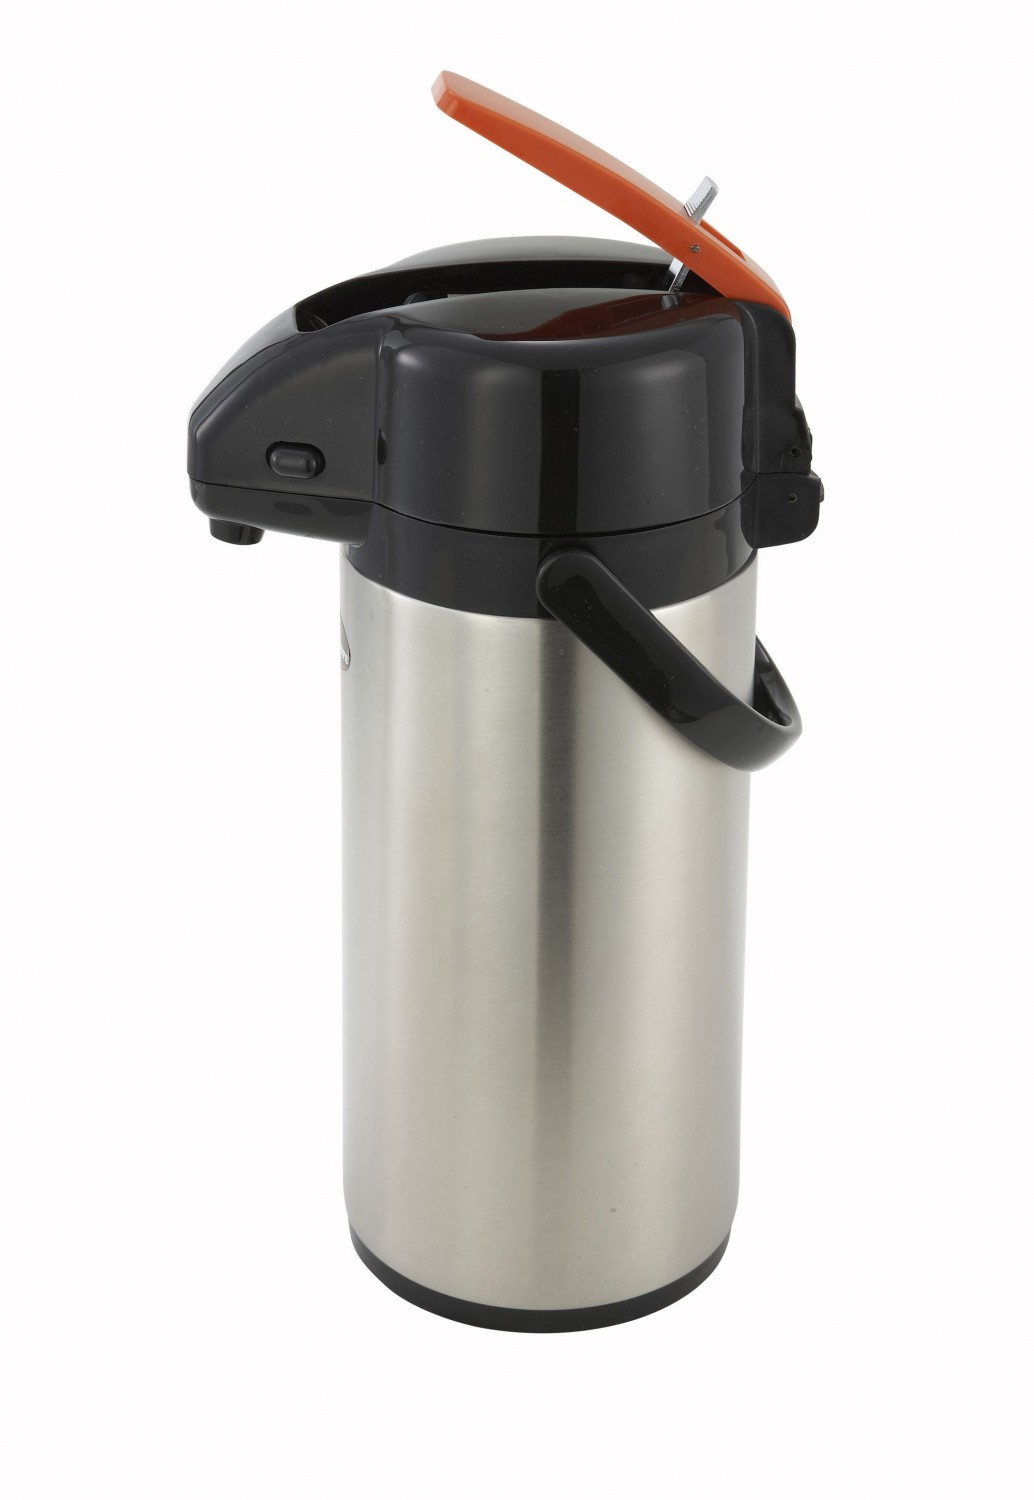 Winco APSK-725DC Stainless Steel Decaf Vacuum Server, Lever Top 2.5 Liter